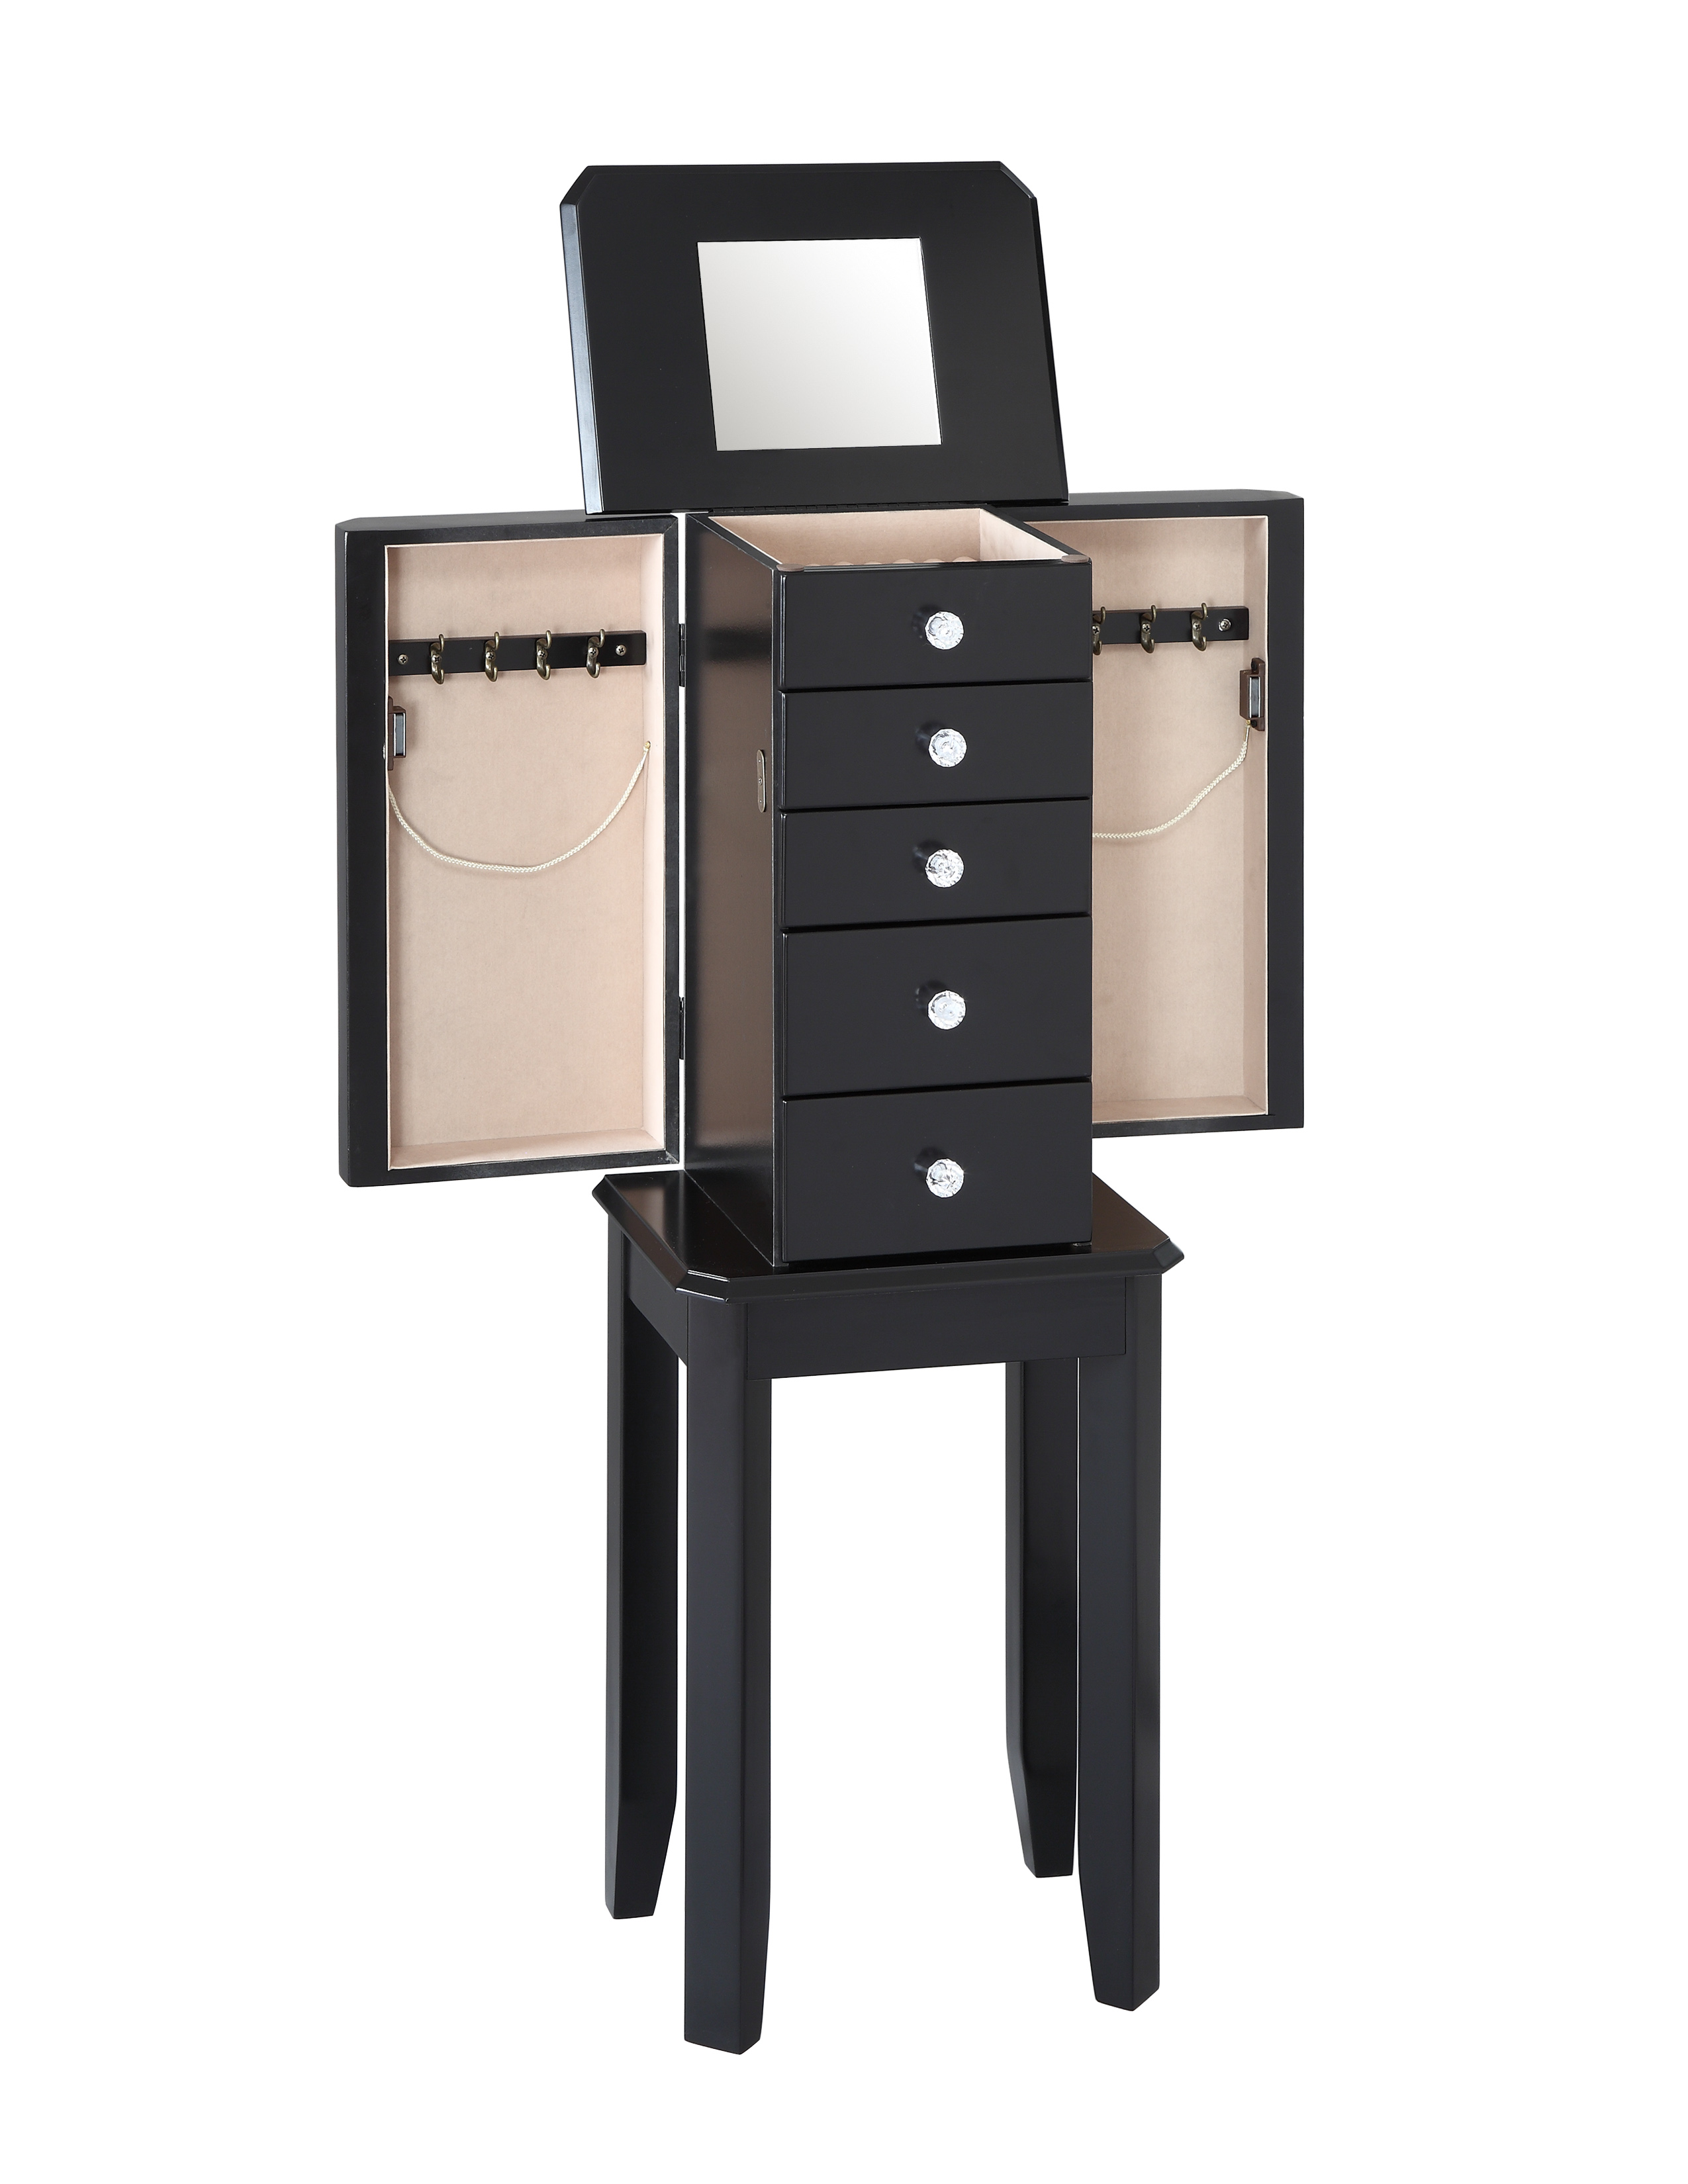 L Powell Black Jewelry Armoire - Home - Furniture - Accent ...